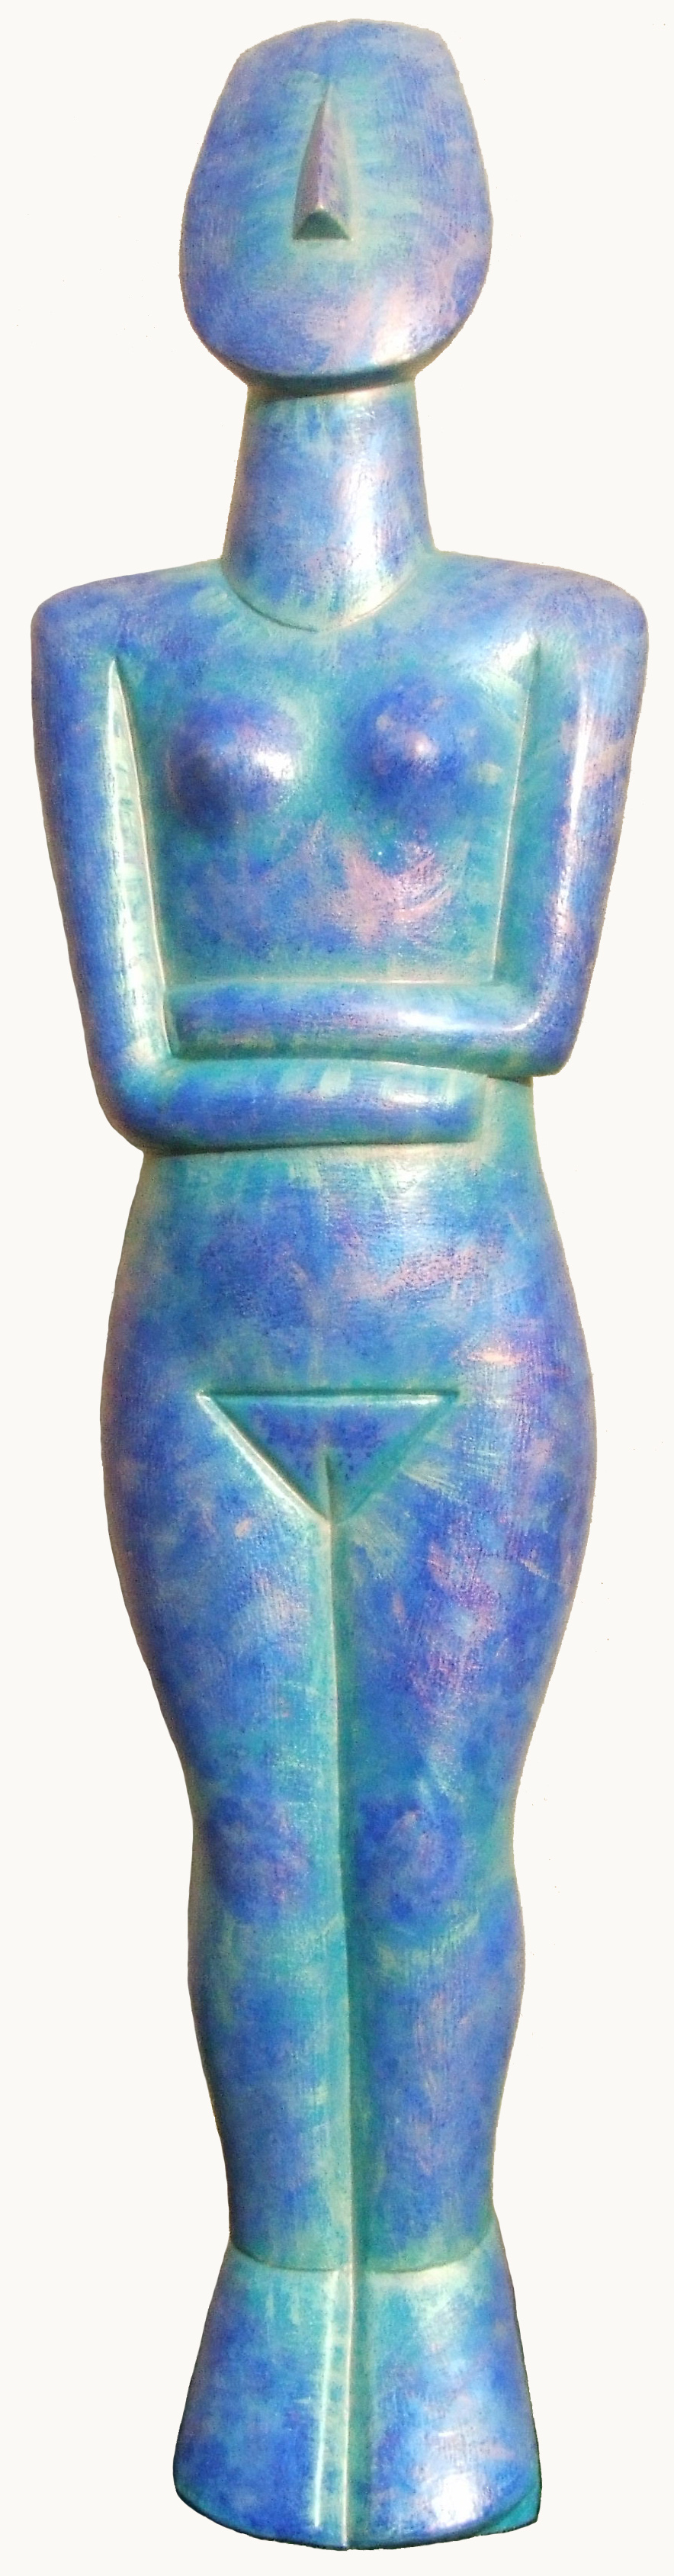 Metalic Cycladic Goddess